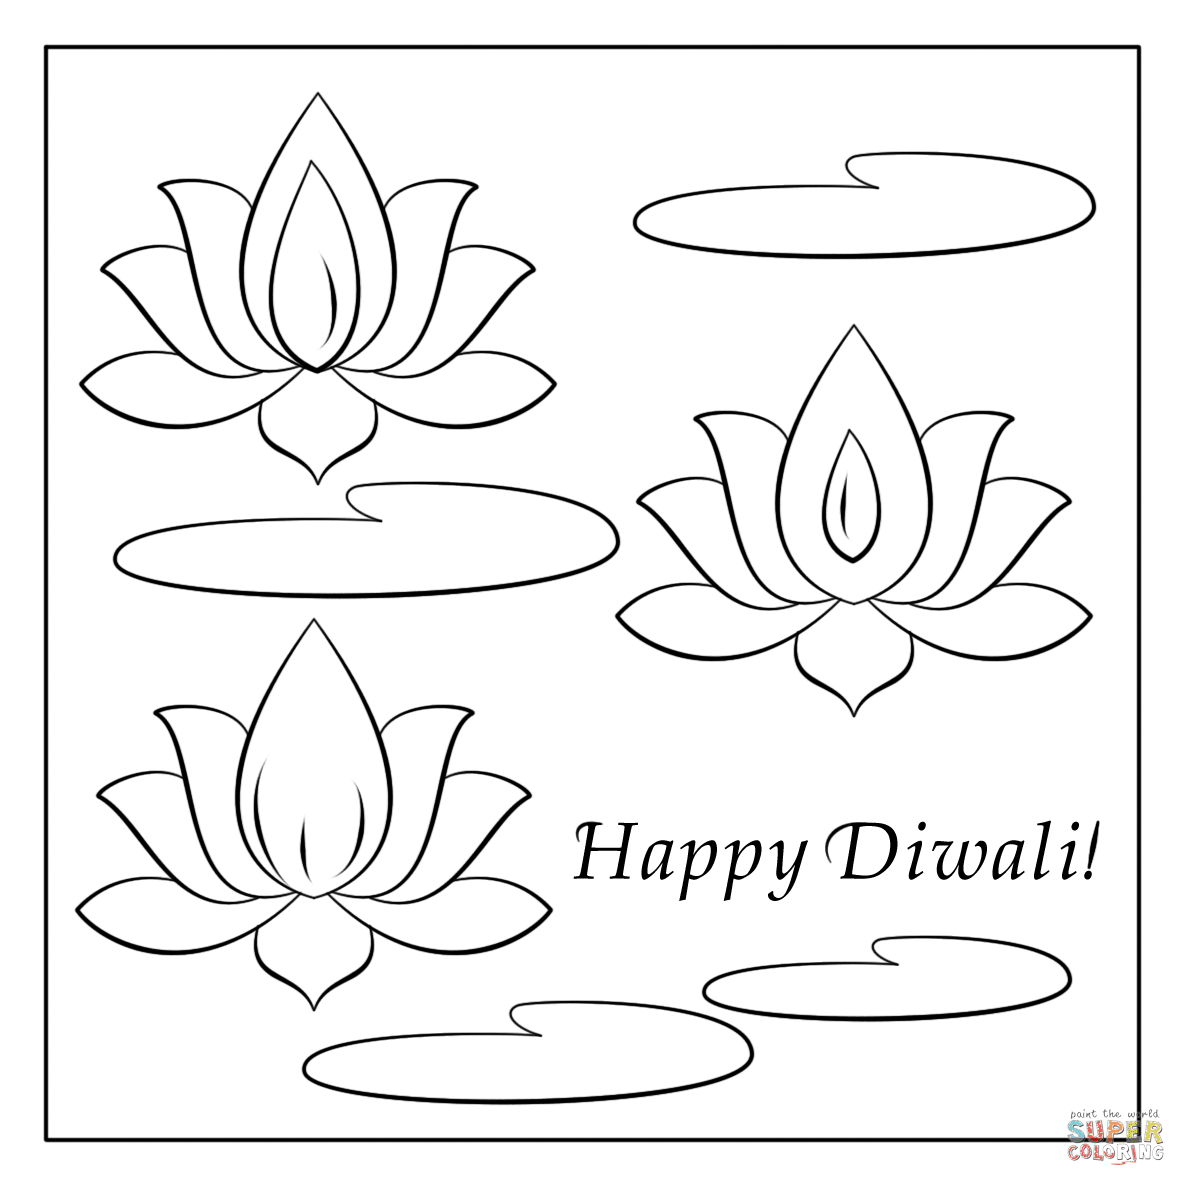 Diwali Colouring Pages - Printable Colouring Sheets | 1186x1186